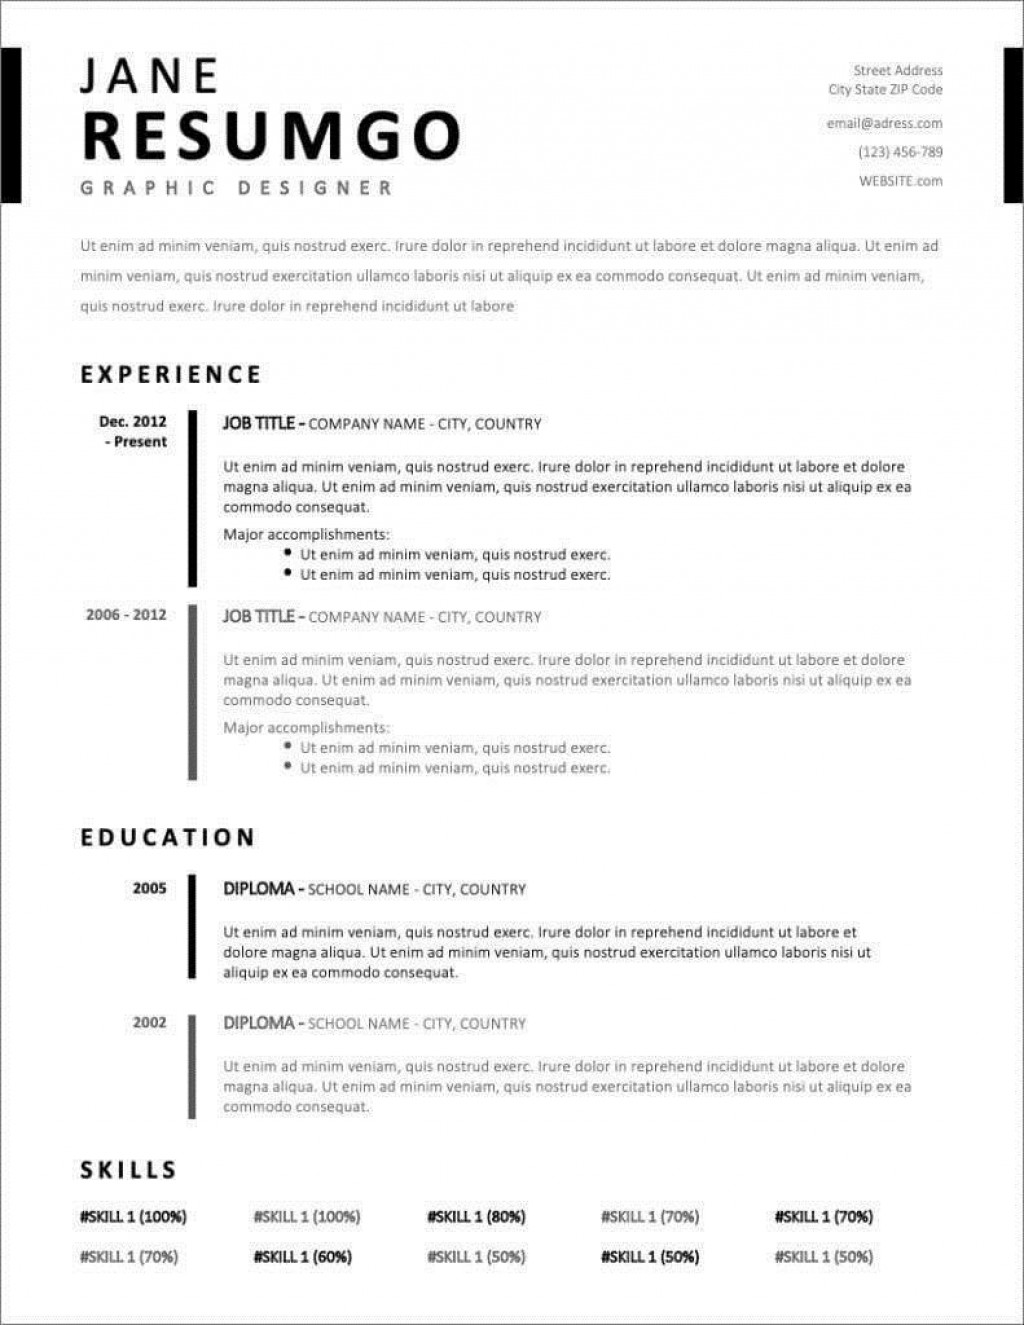 005 Fearsome Free Basic Resume Template Download High Resolution  M Word Quora For Microsoft 2010Large